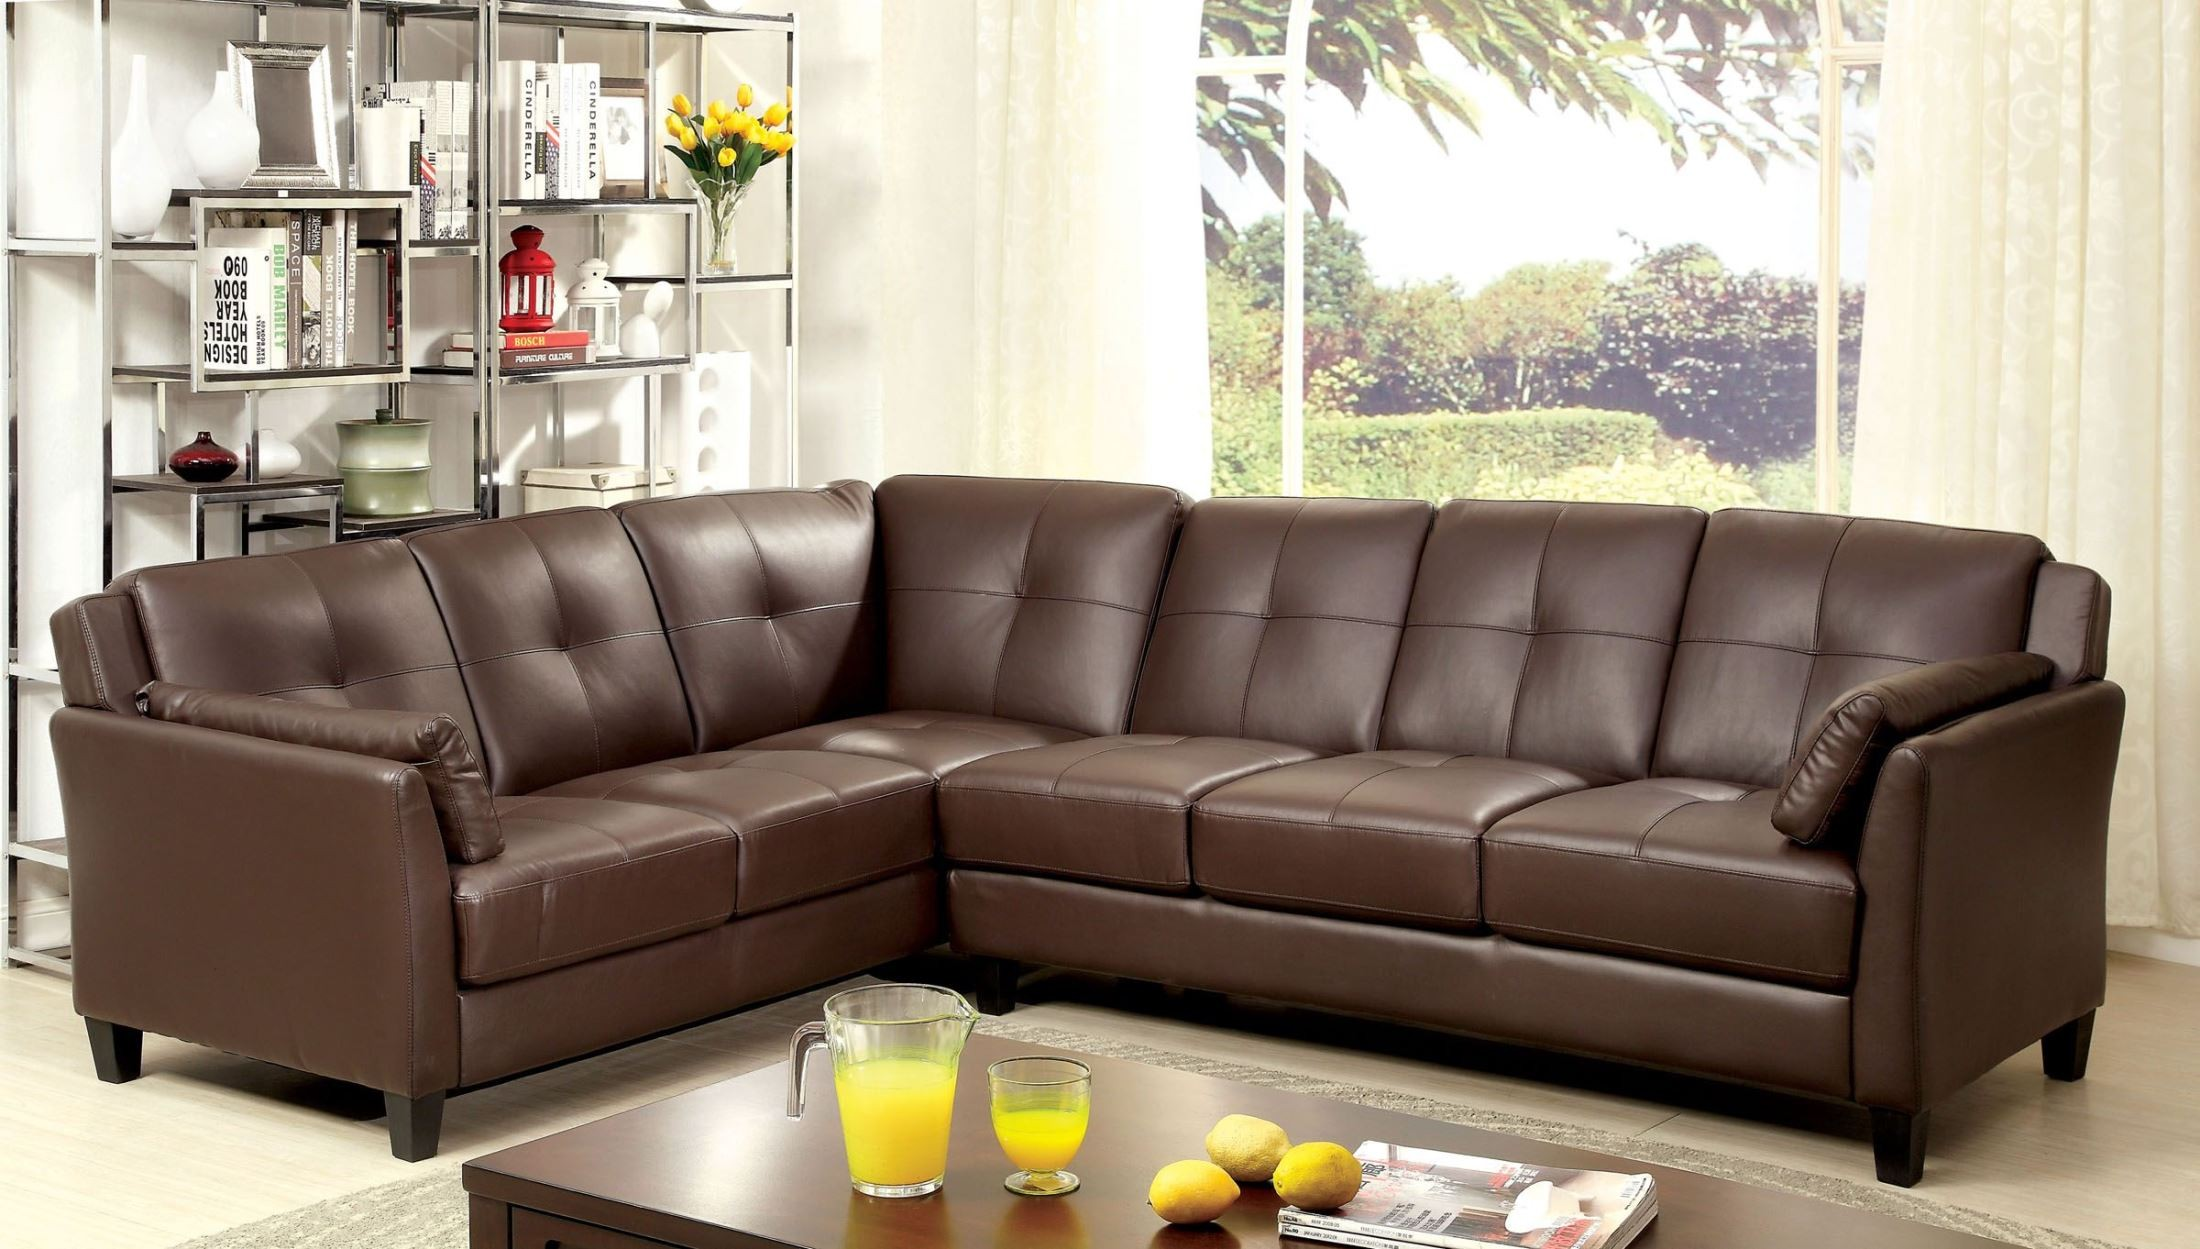 Peever brown sectional 668999